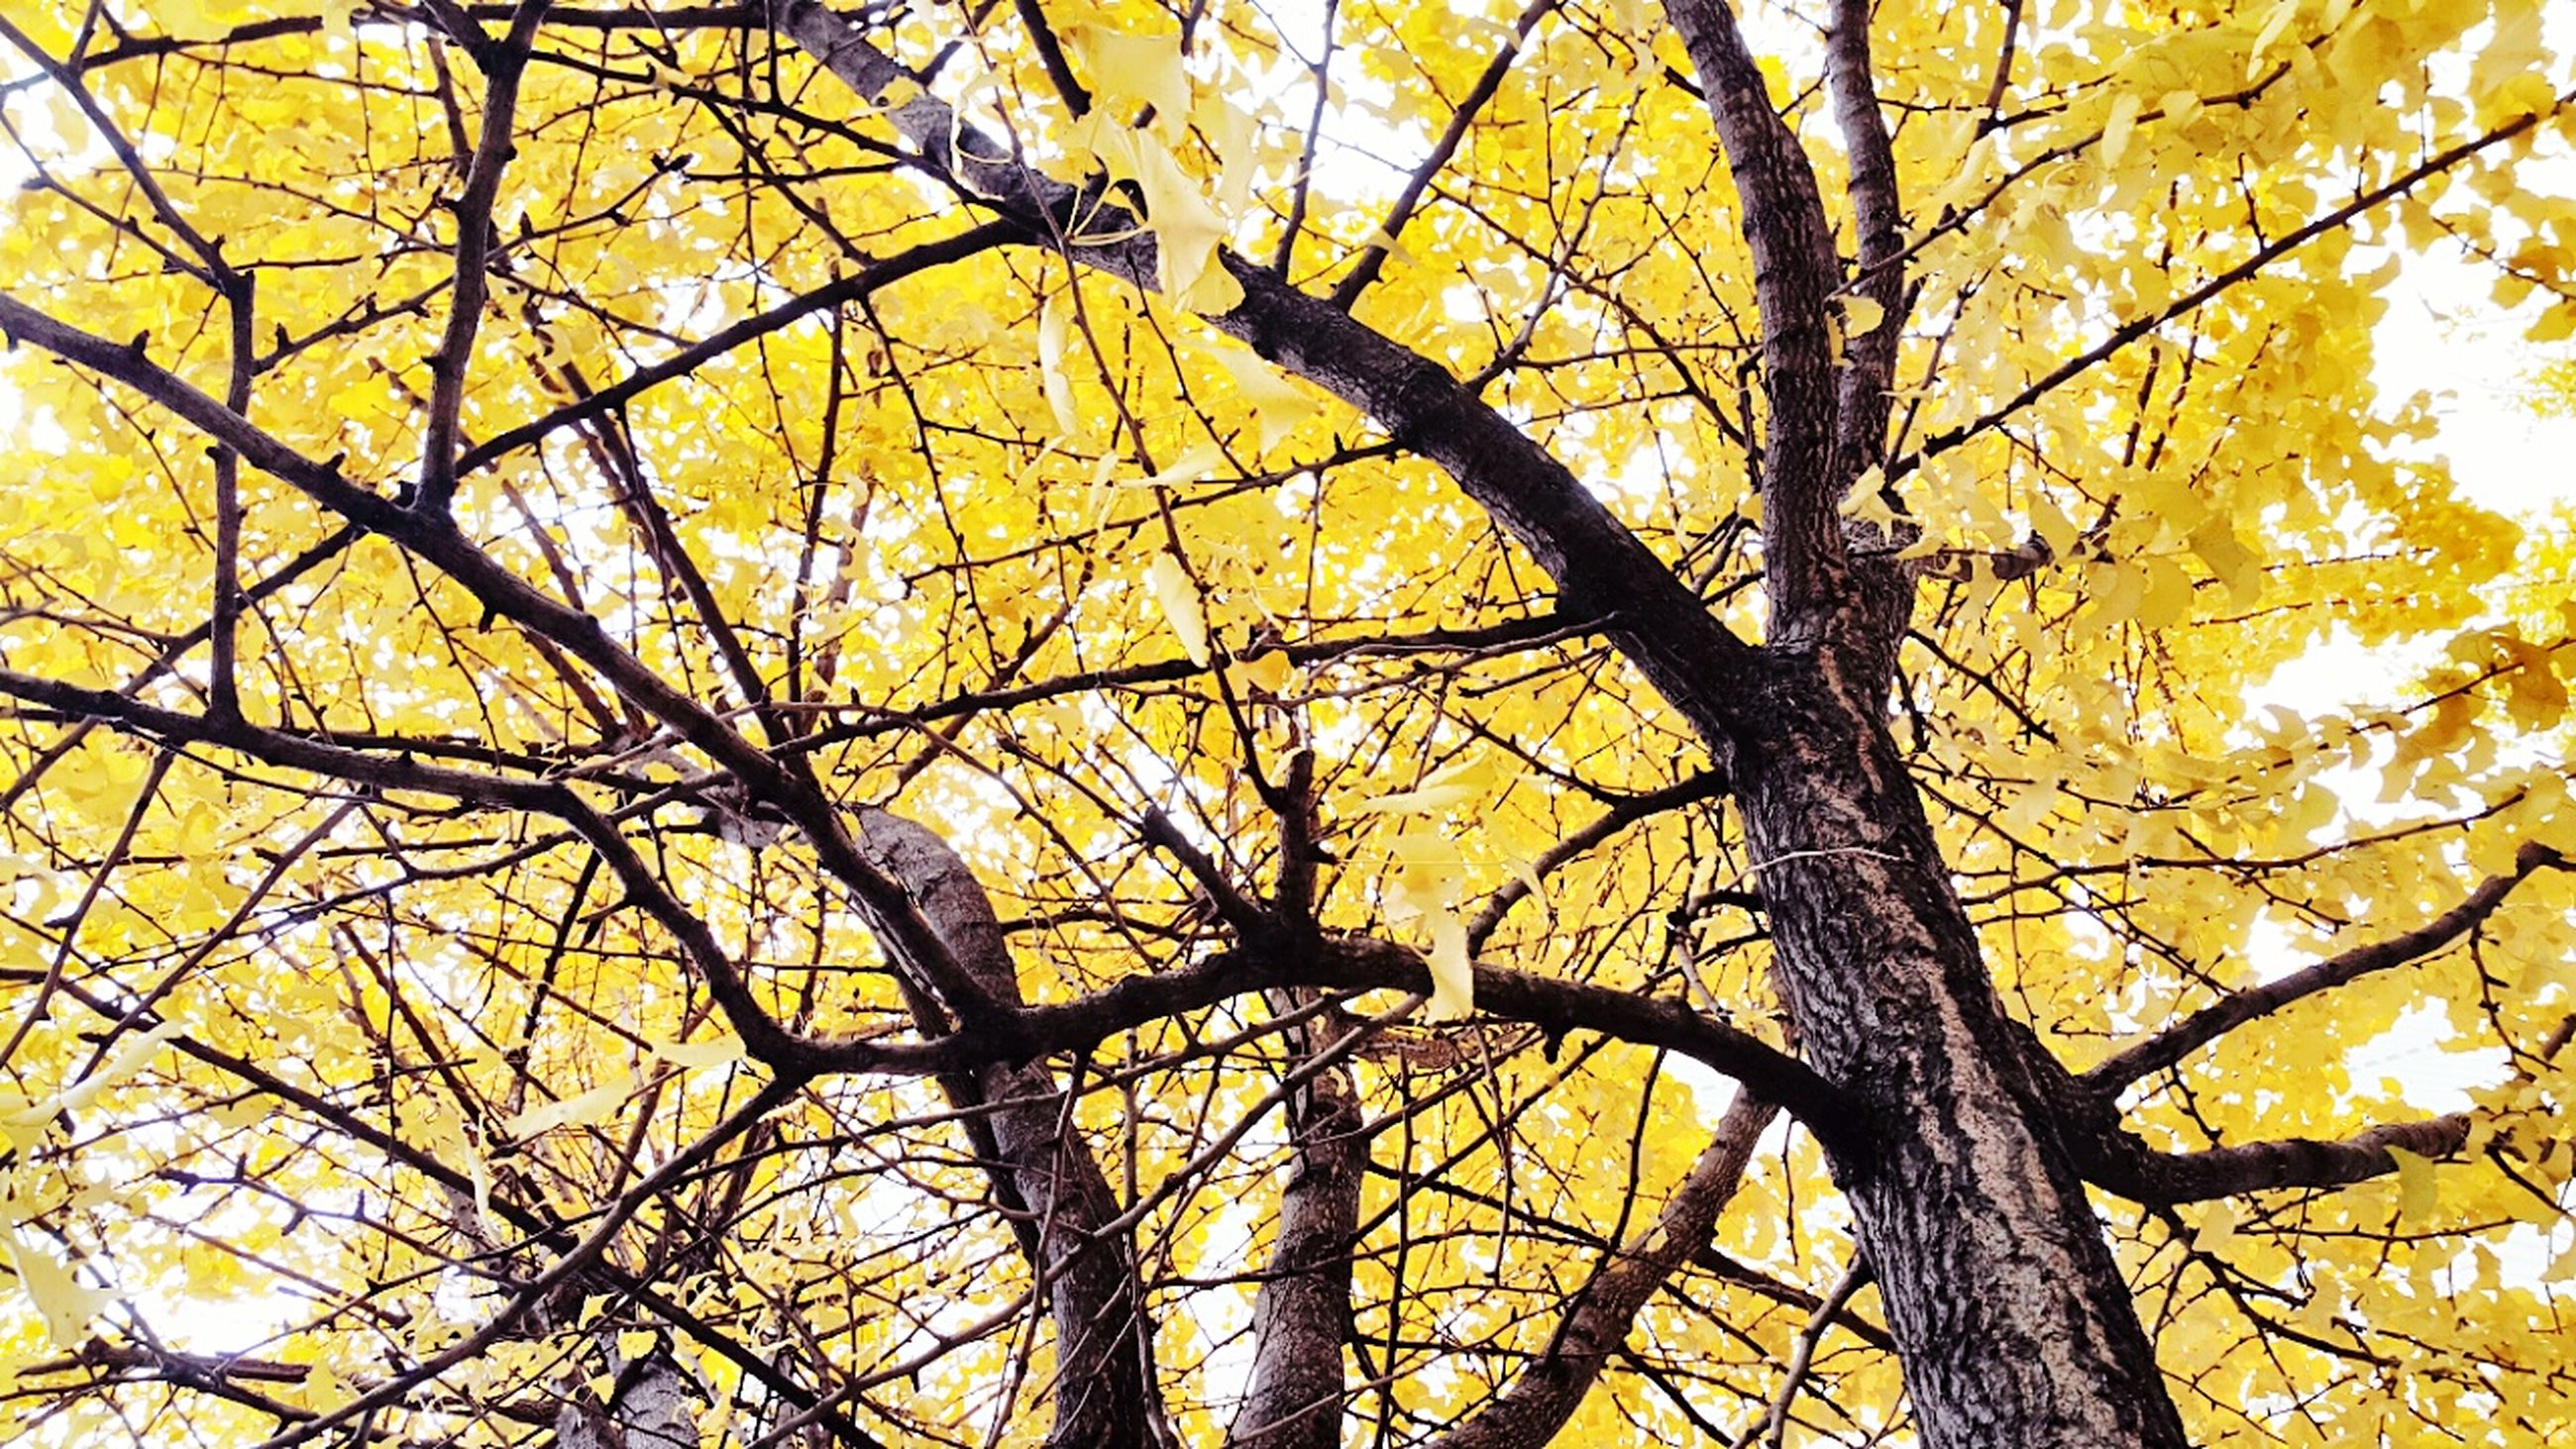 tree, branch, yellow, low angle view, autumn, change, nature, growth, beauty in nature, season, tree trunk, orange color, sky, tranquility, outdoors, full frame, no people, backgrounds, day, leaf